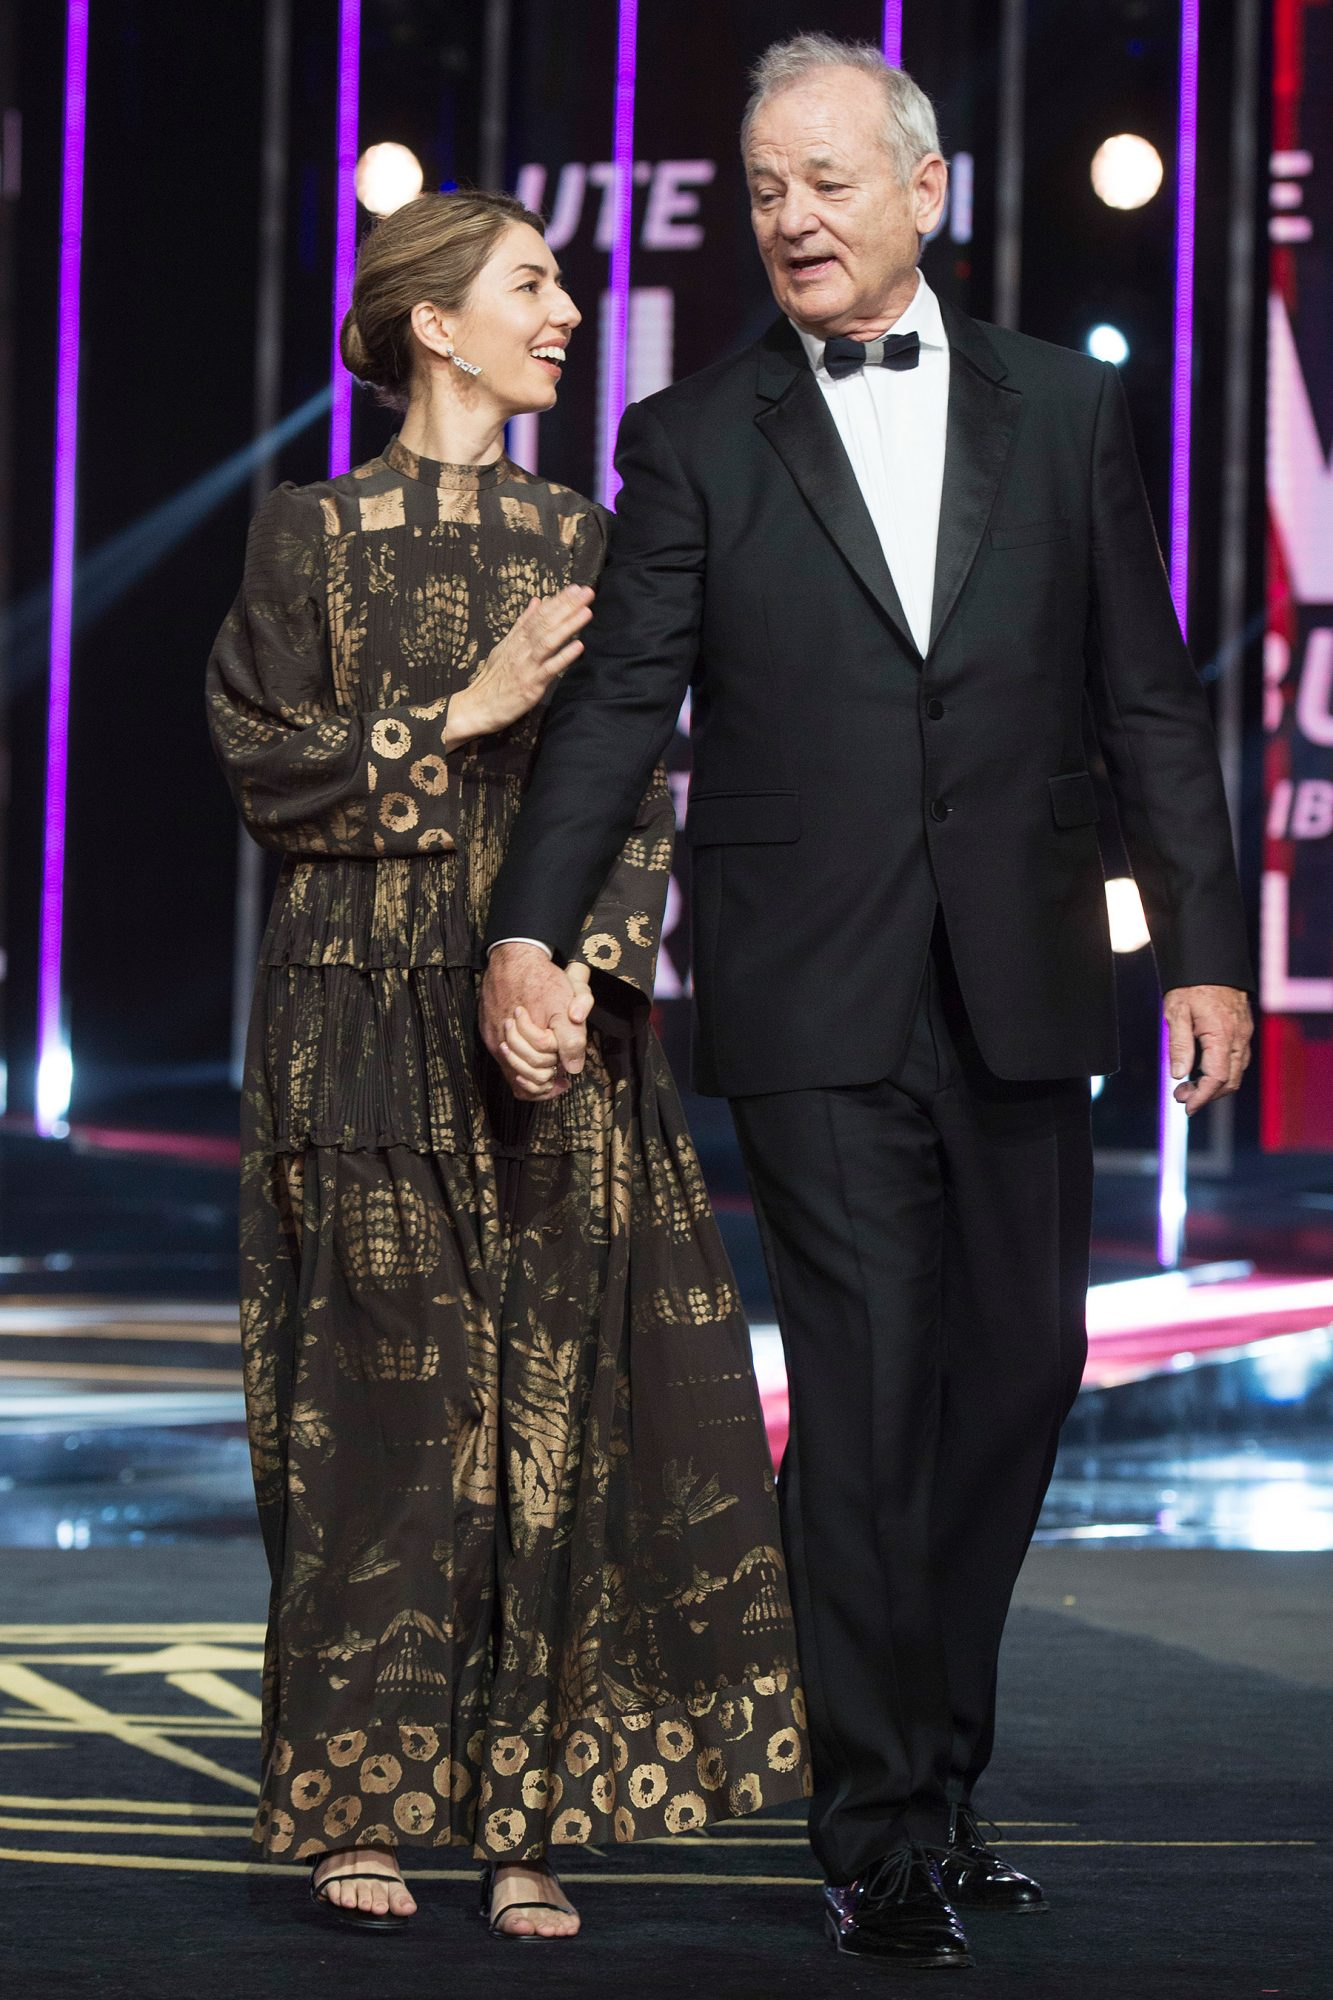 Morocco - 15th Marrakech International Film Festival - Opening Ceremony